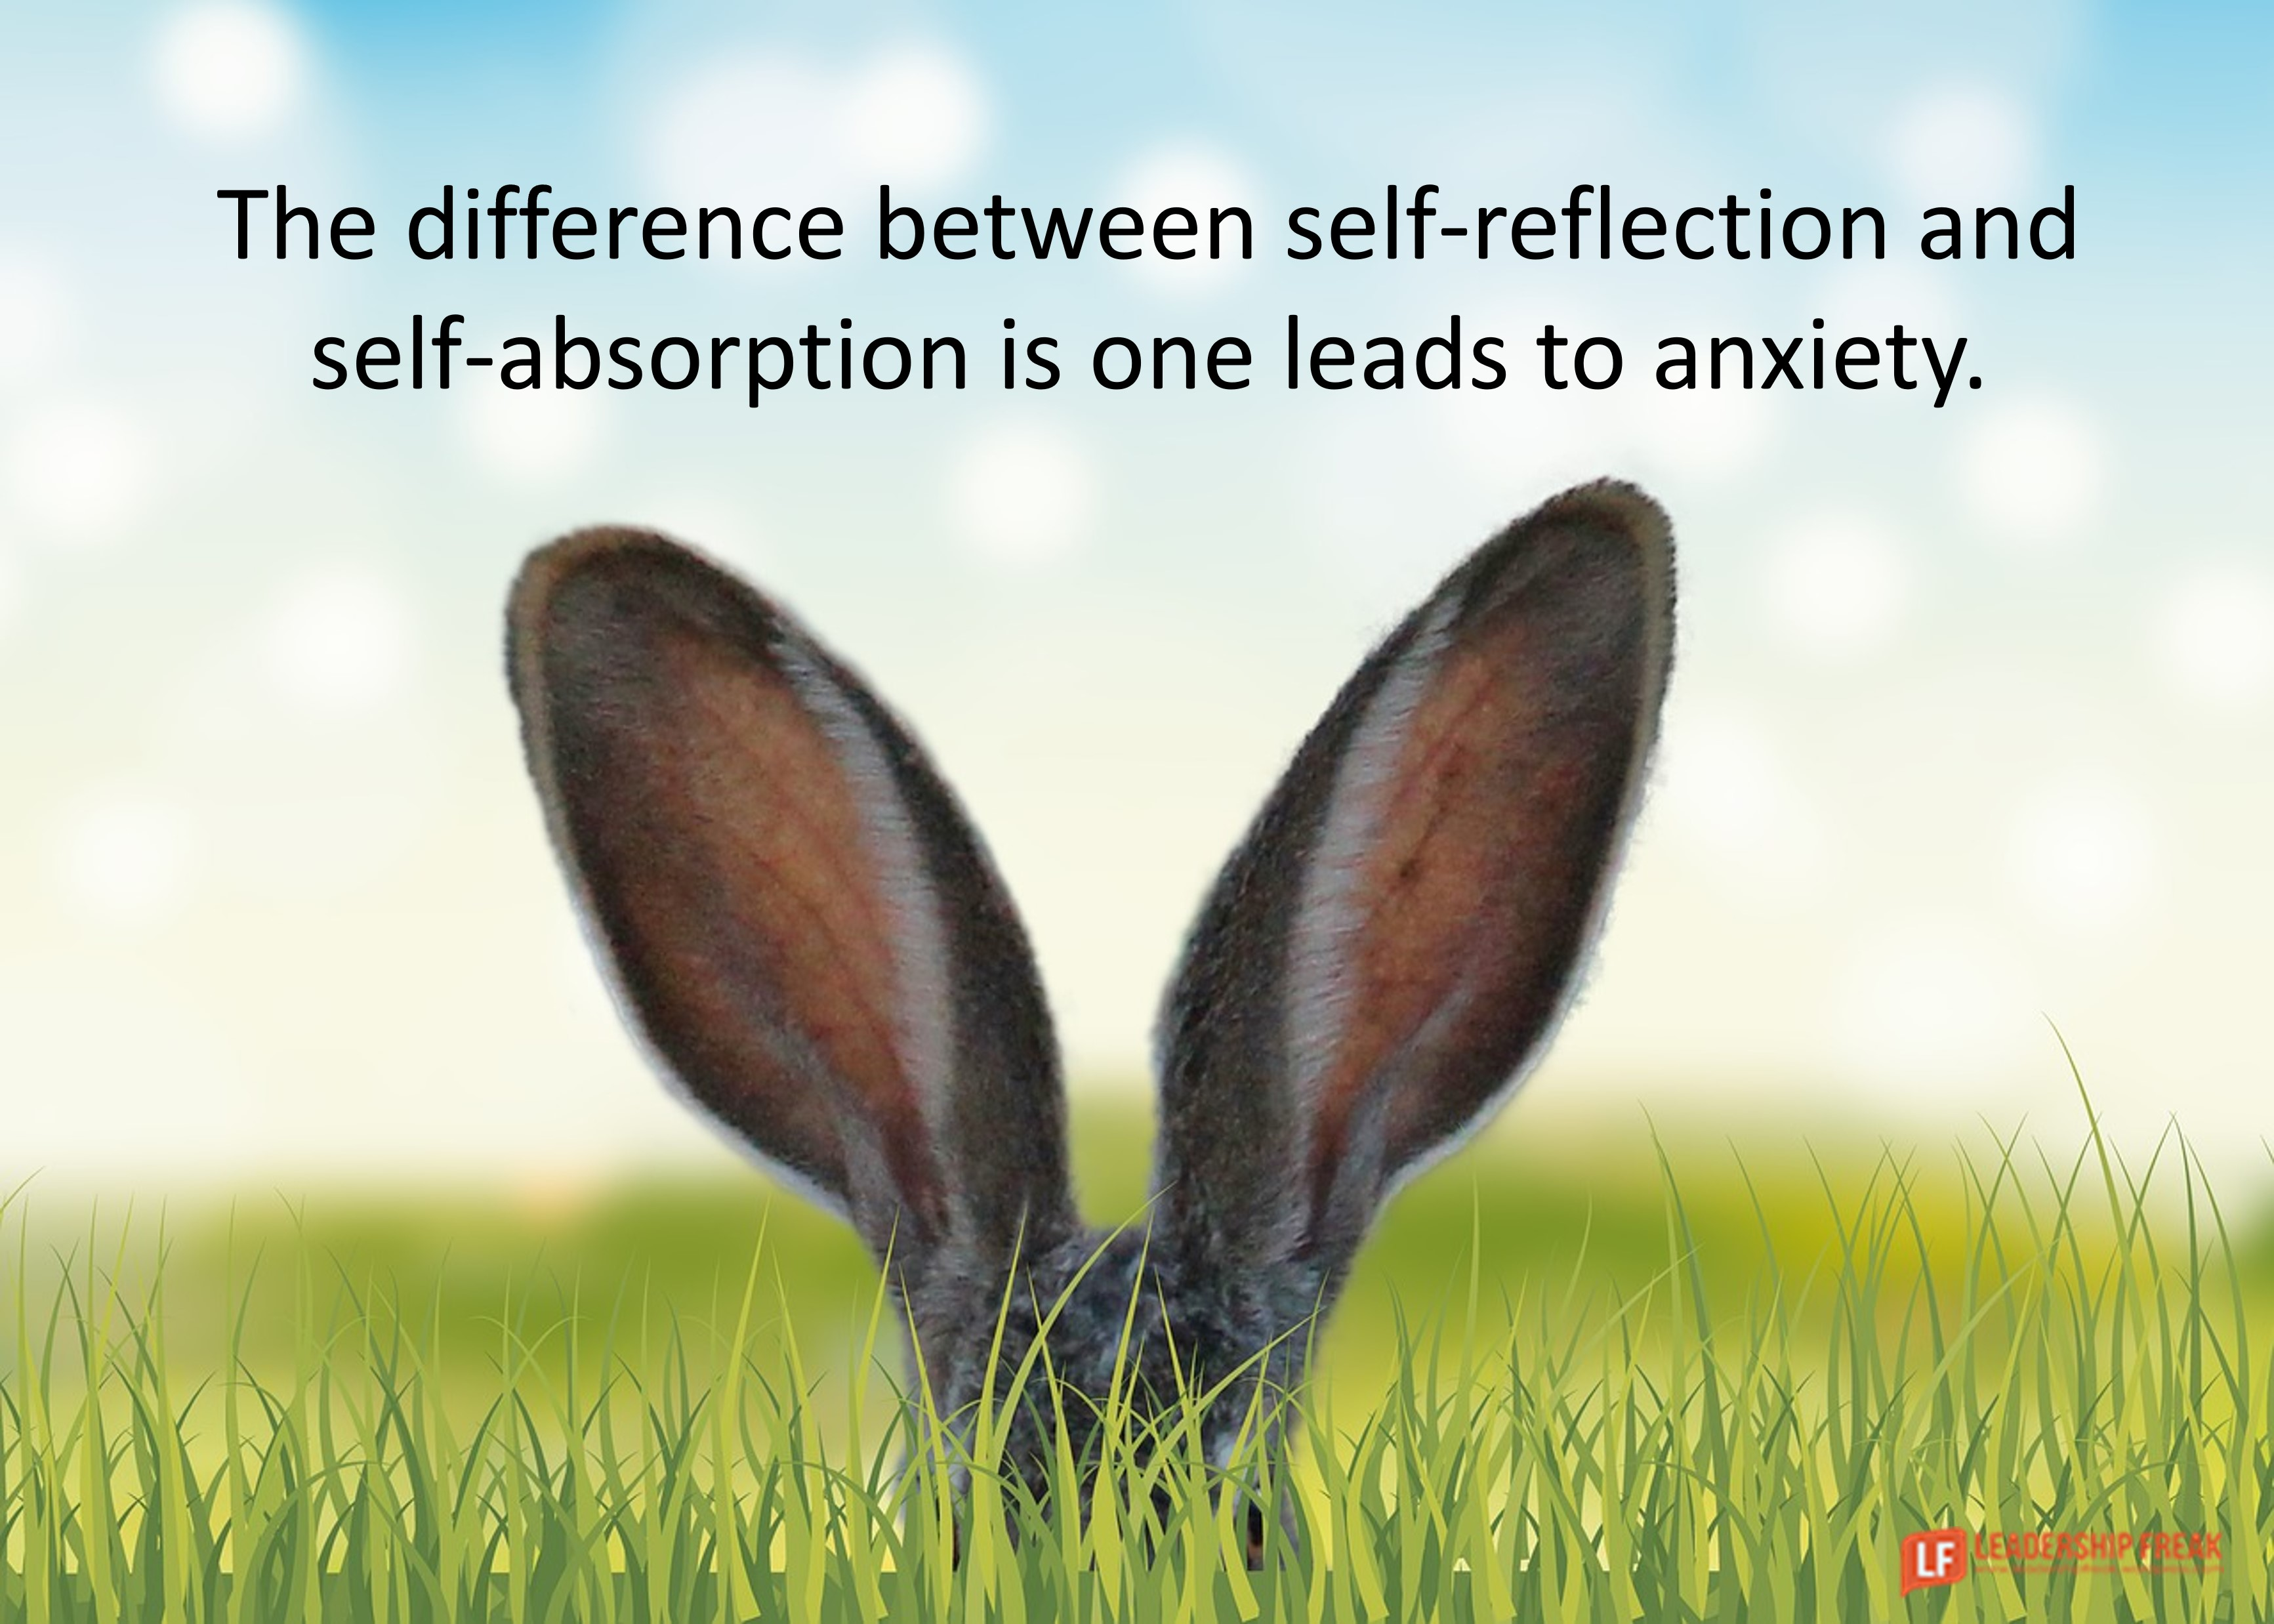 Bunny ears sticking out of the grass.  The difference between self-reflection and self-absorption is one leads to anxiety.